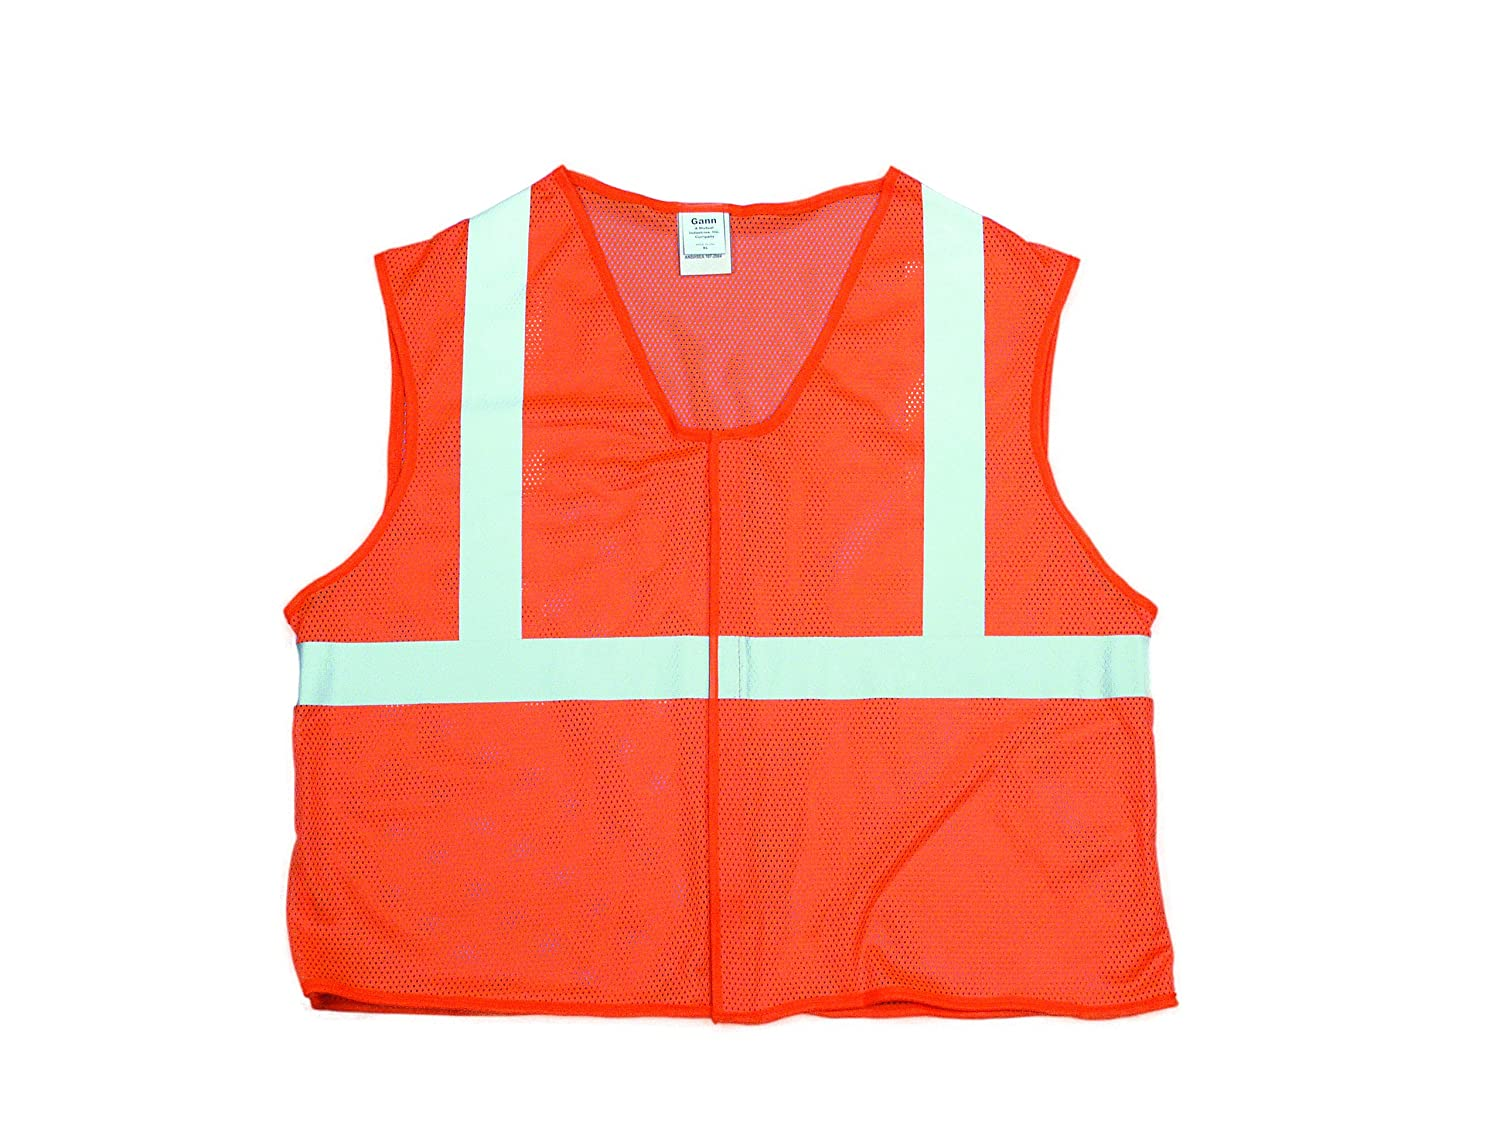 XX-Large Mutual Industries 16375-52X High Visibility ANSI Class 2 Mesh Safety Vest with 2 Silver Reflective Tape Orange Mutual inc.